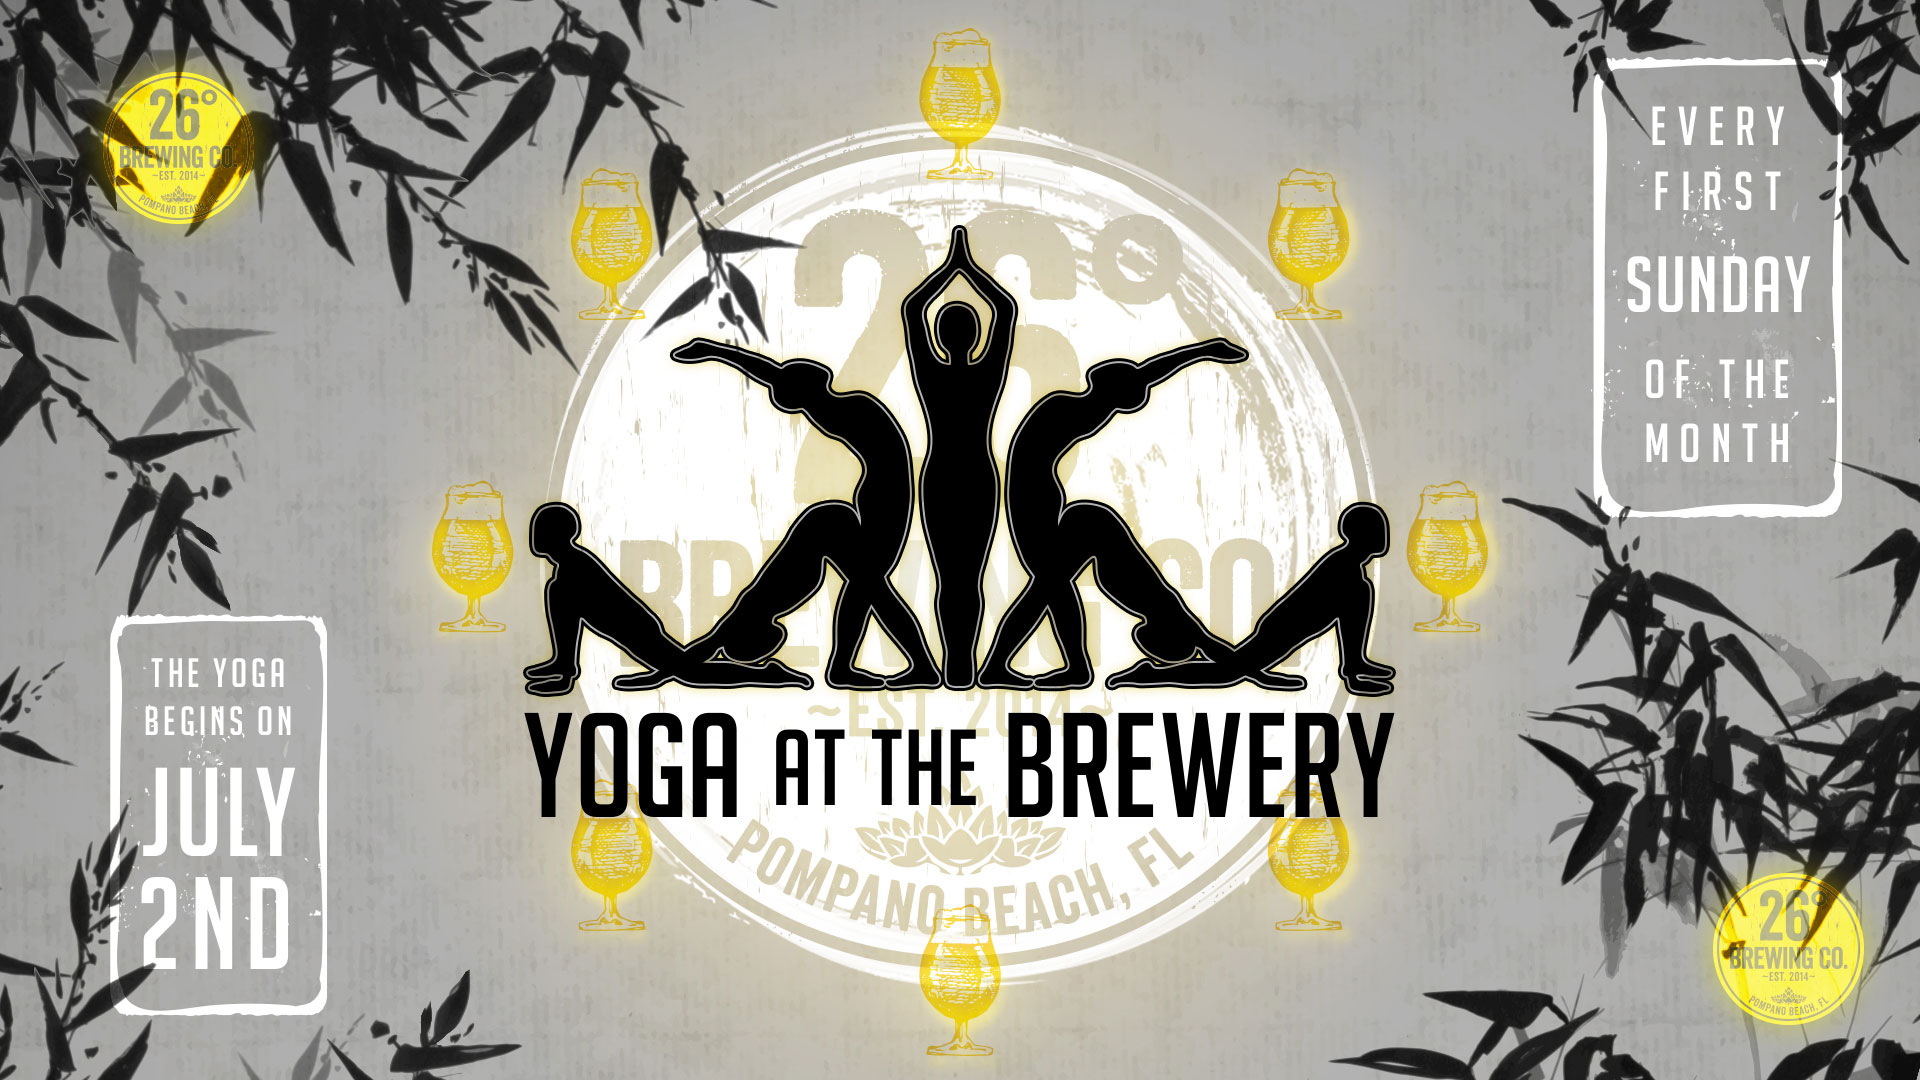 26-BREWING-Yoga-at-the-Brewery_July